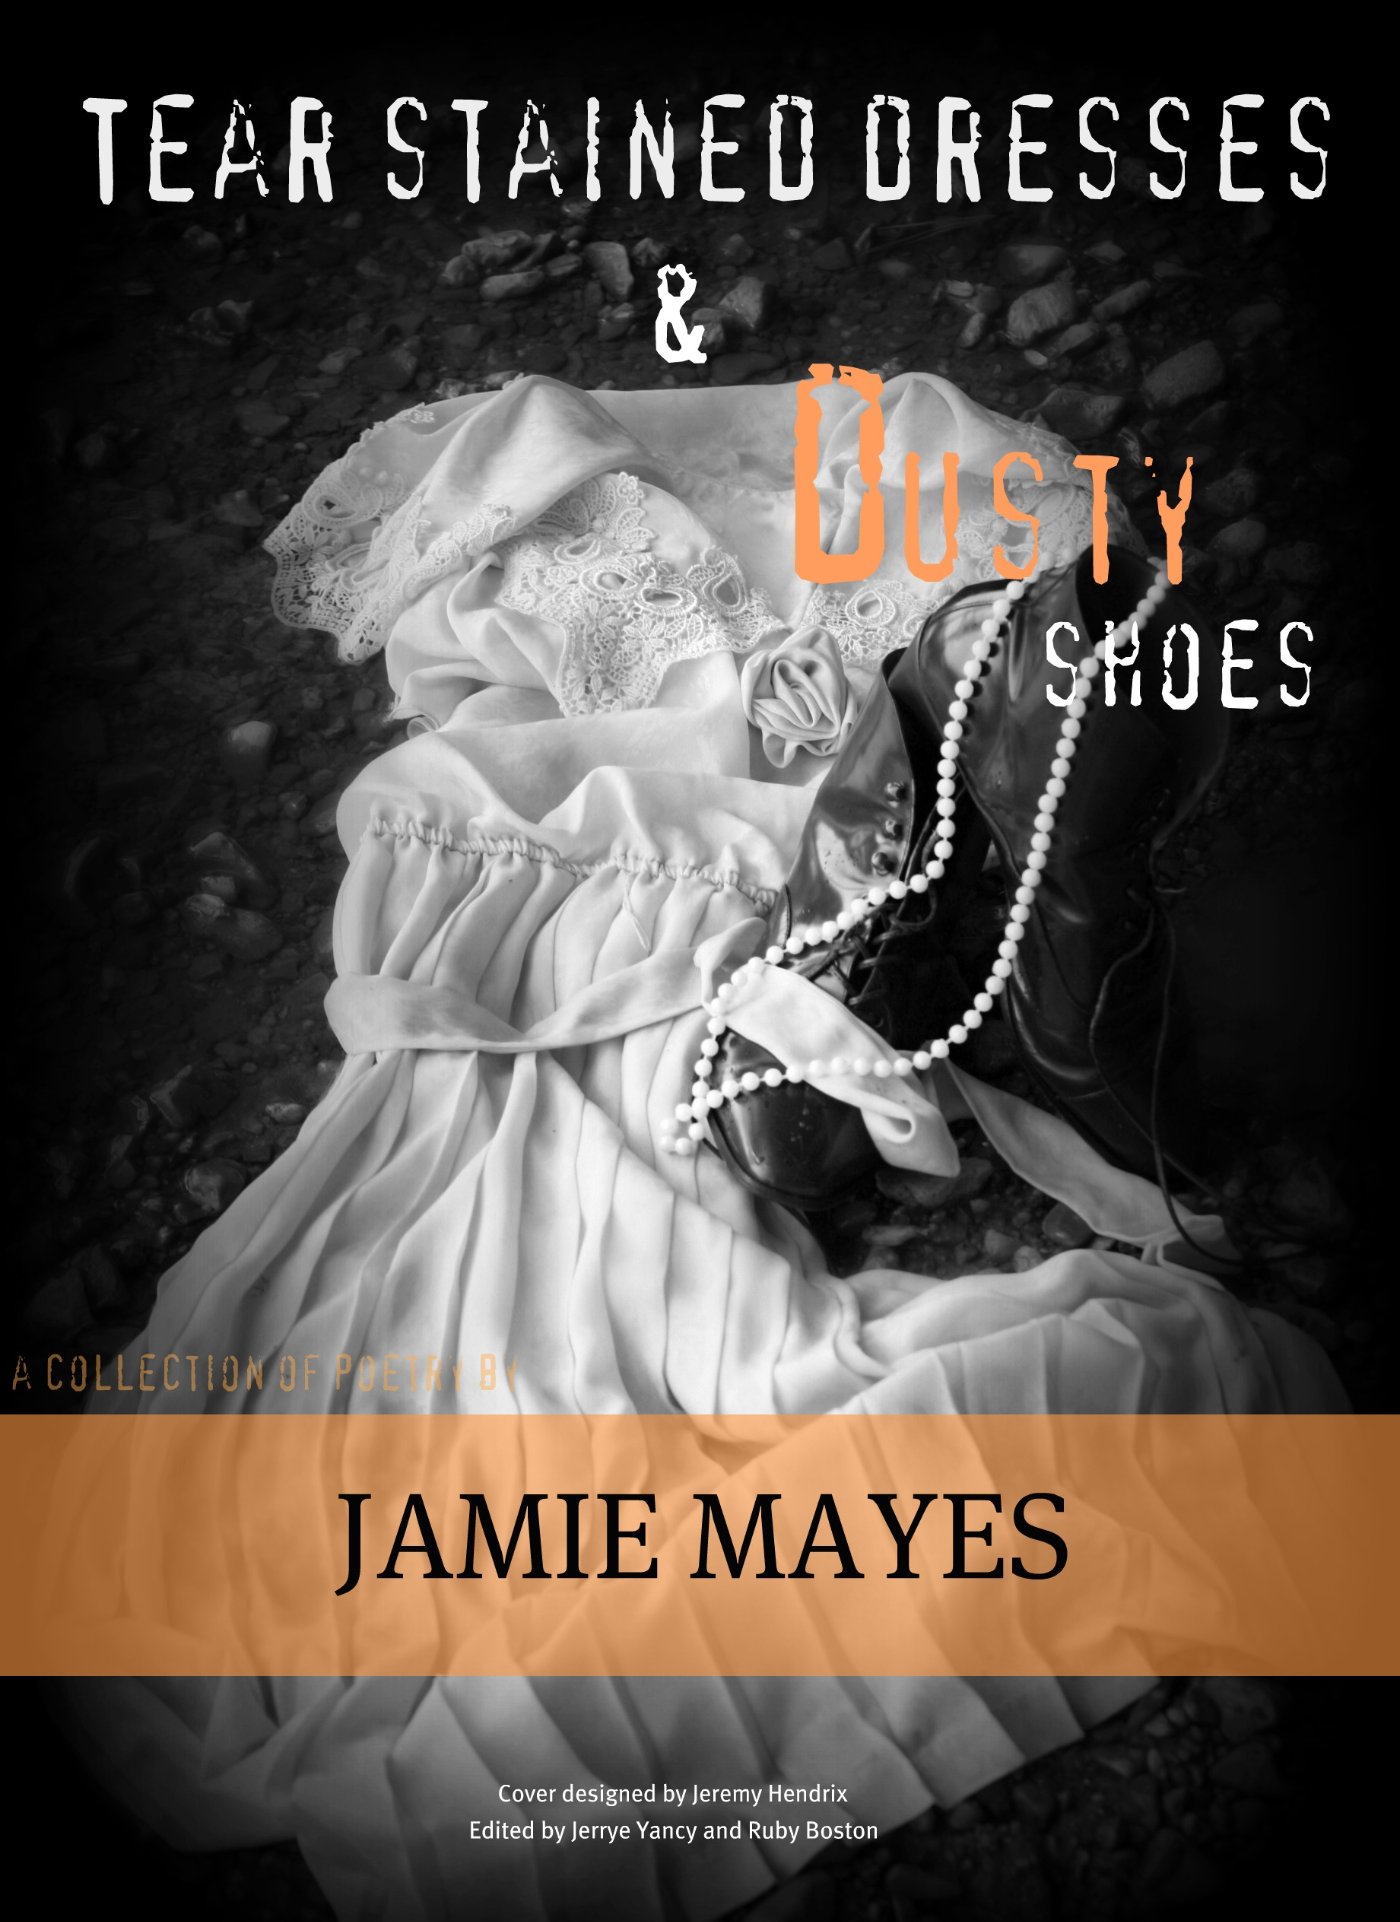 Tear Stained Dresses And Dusty Shoes Book Cover